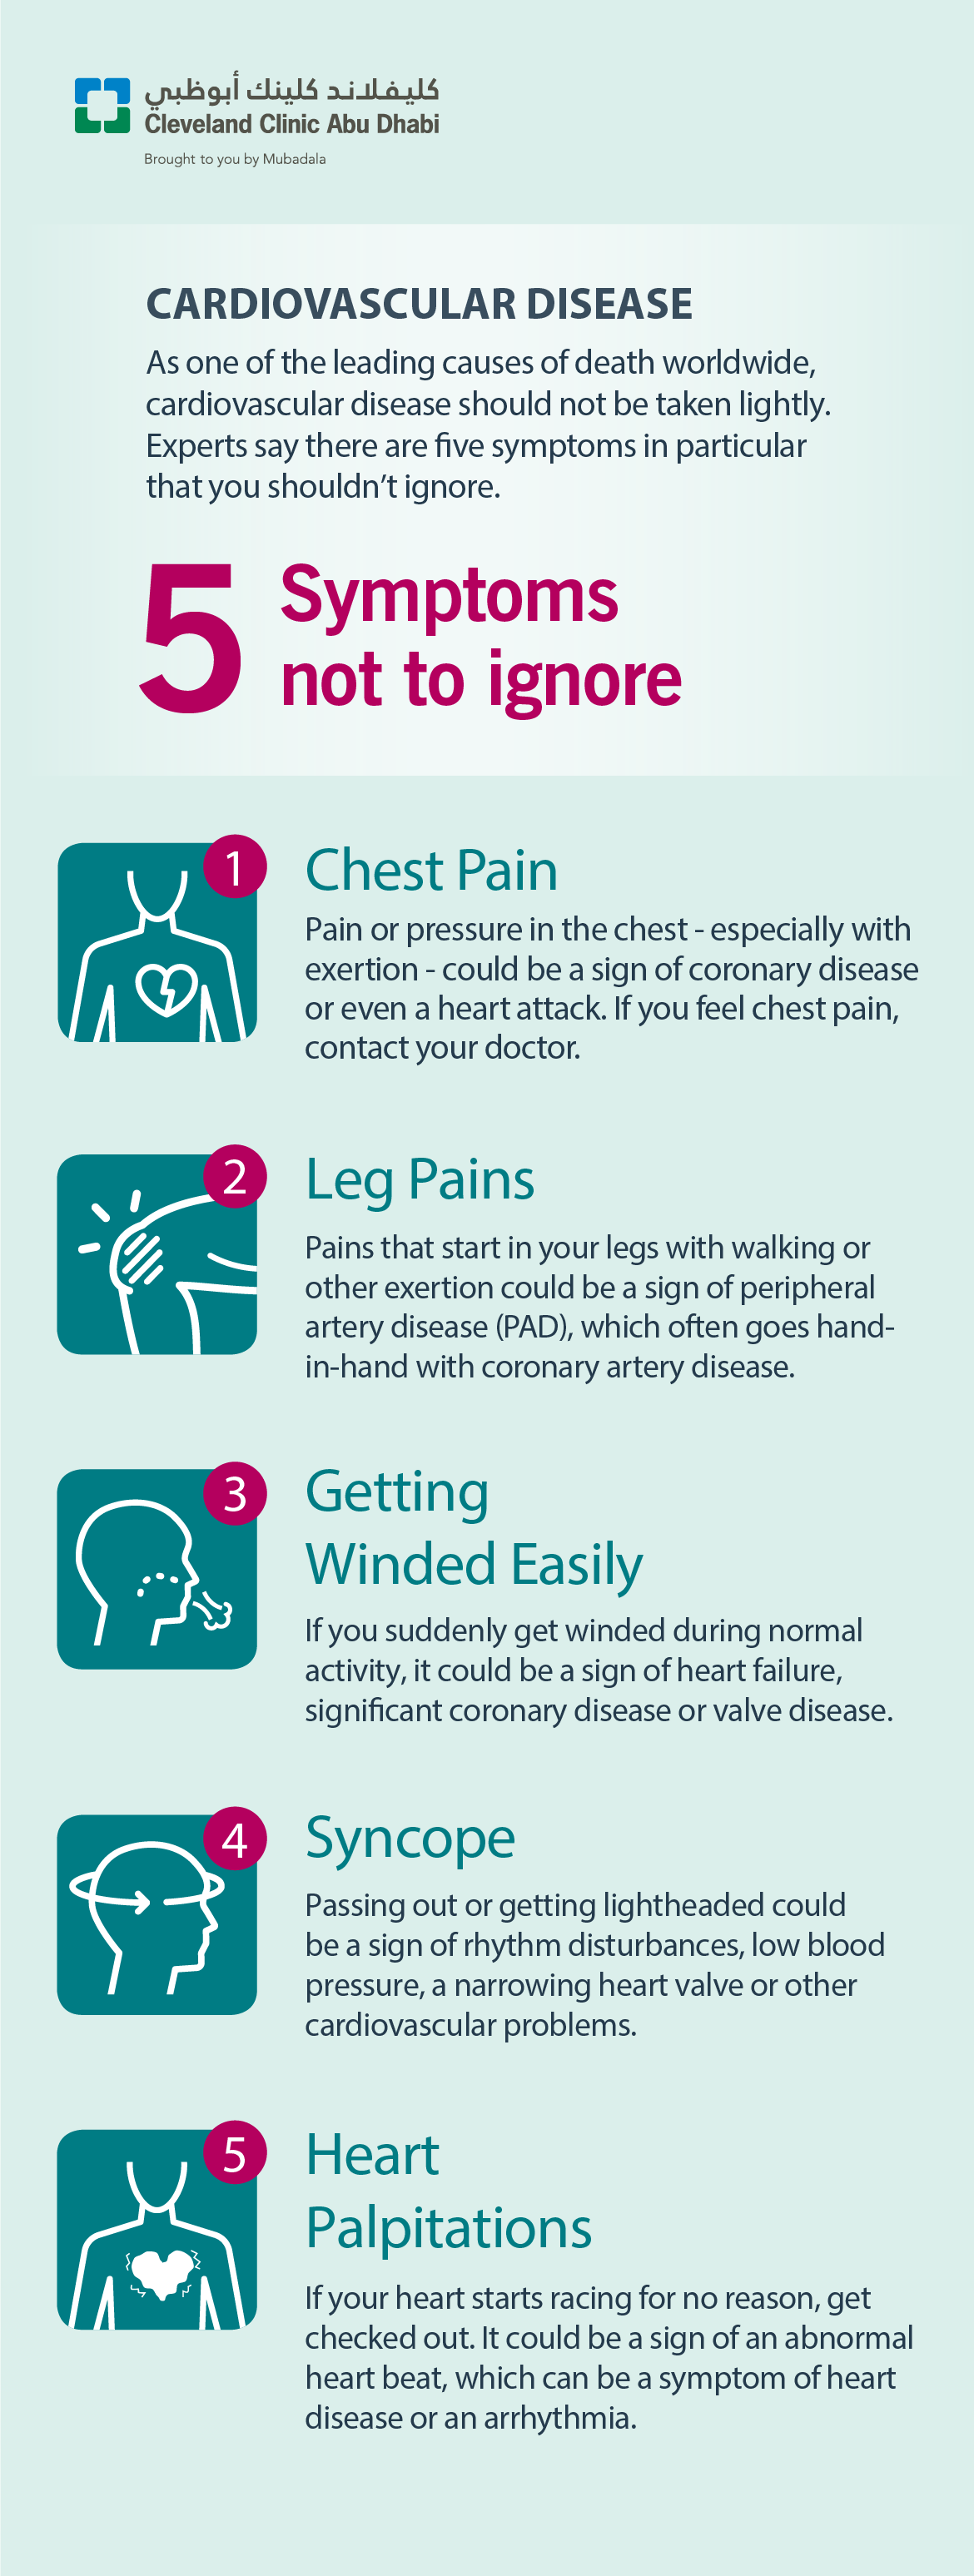 Cardiovascular Disease: 5 Symptoms Not to Ignore